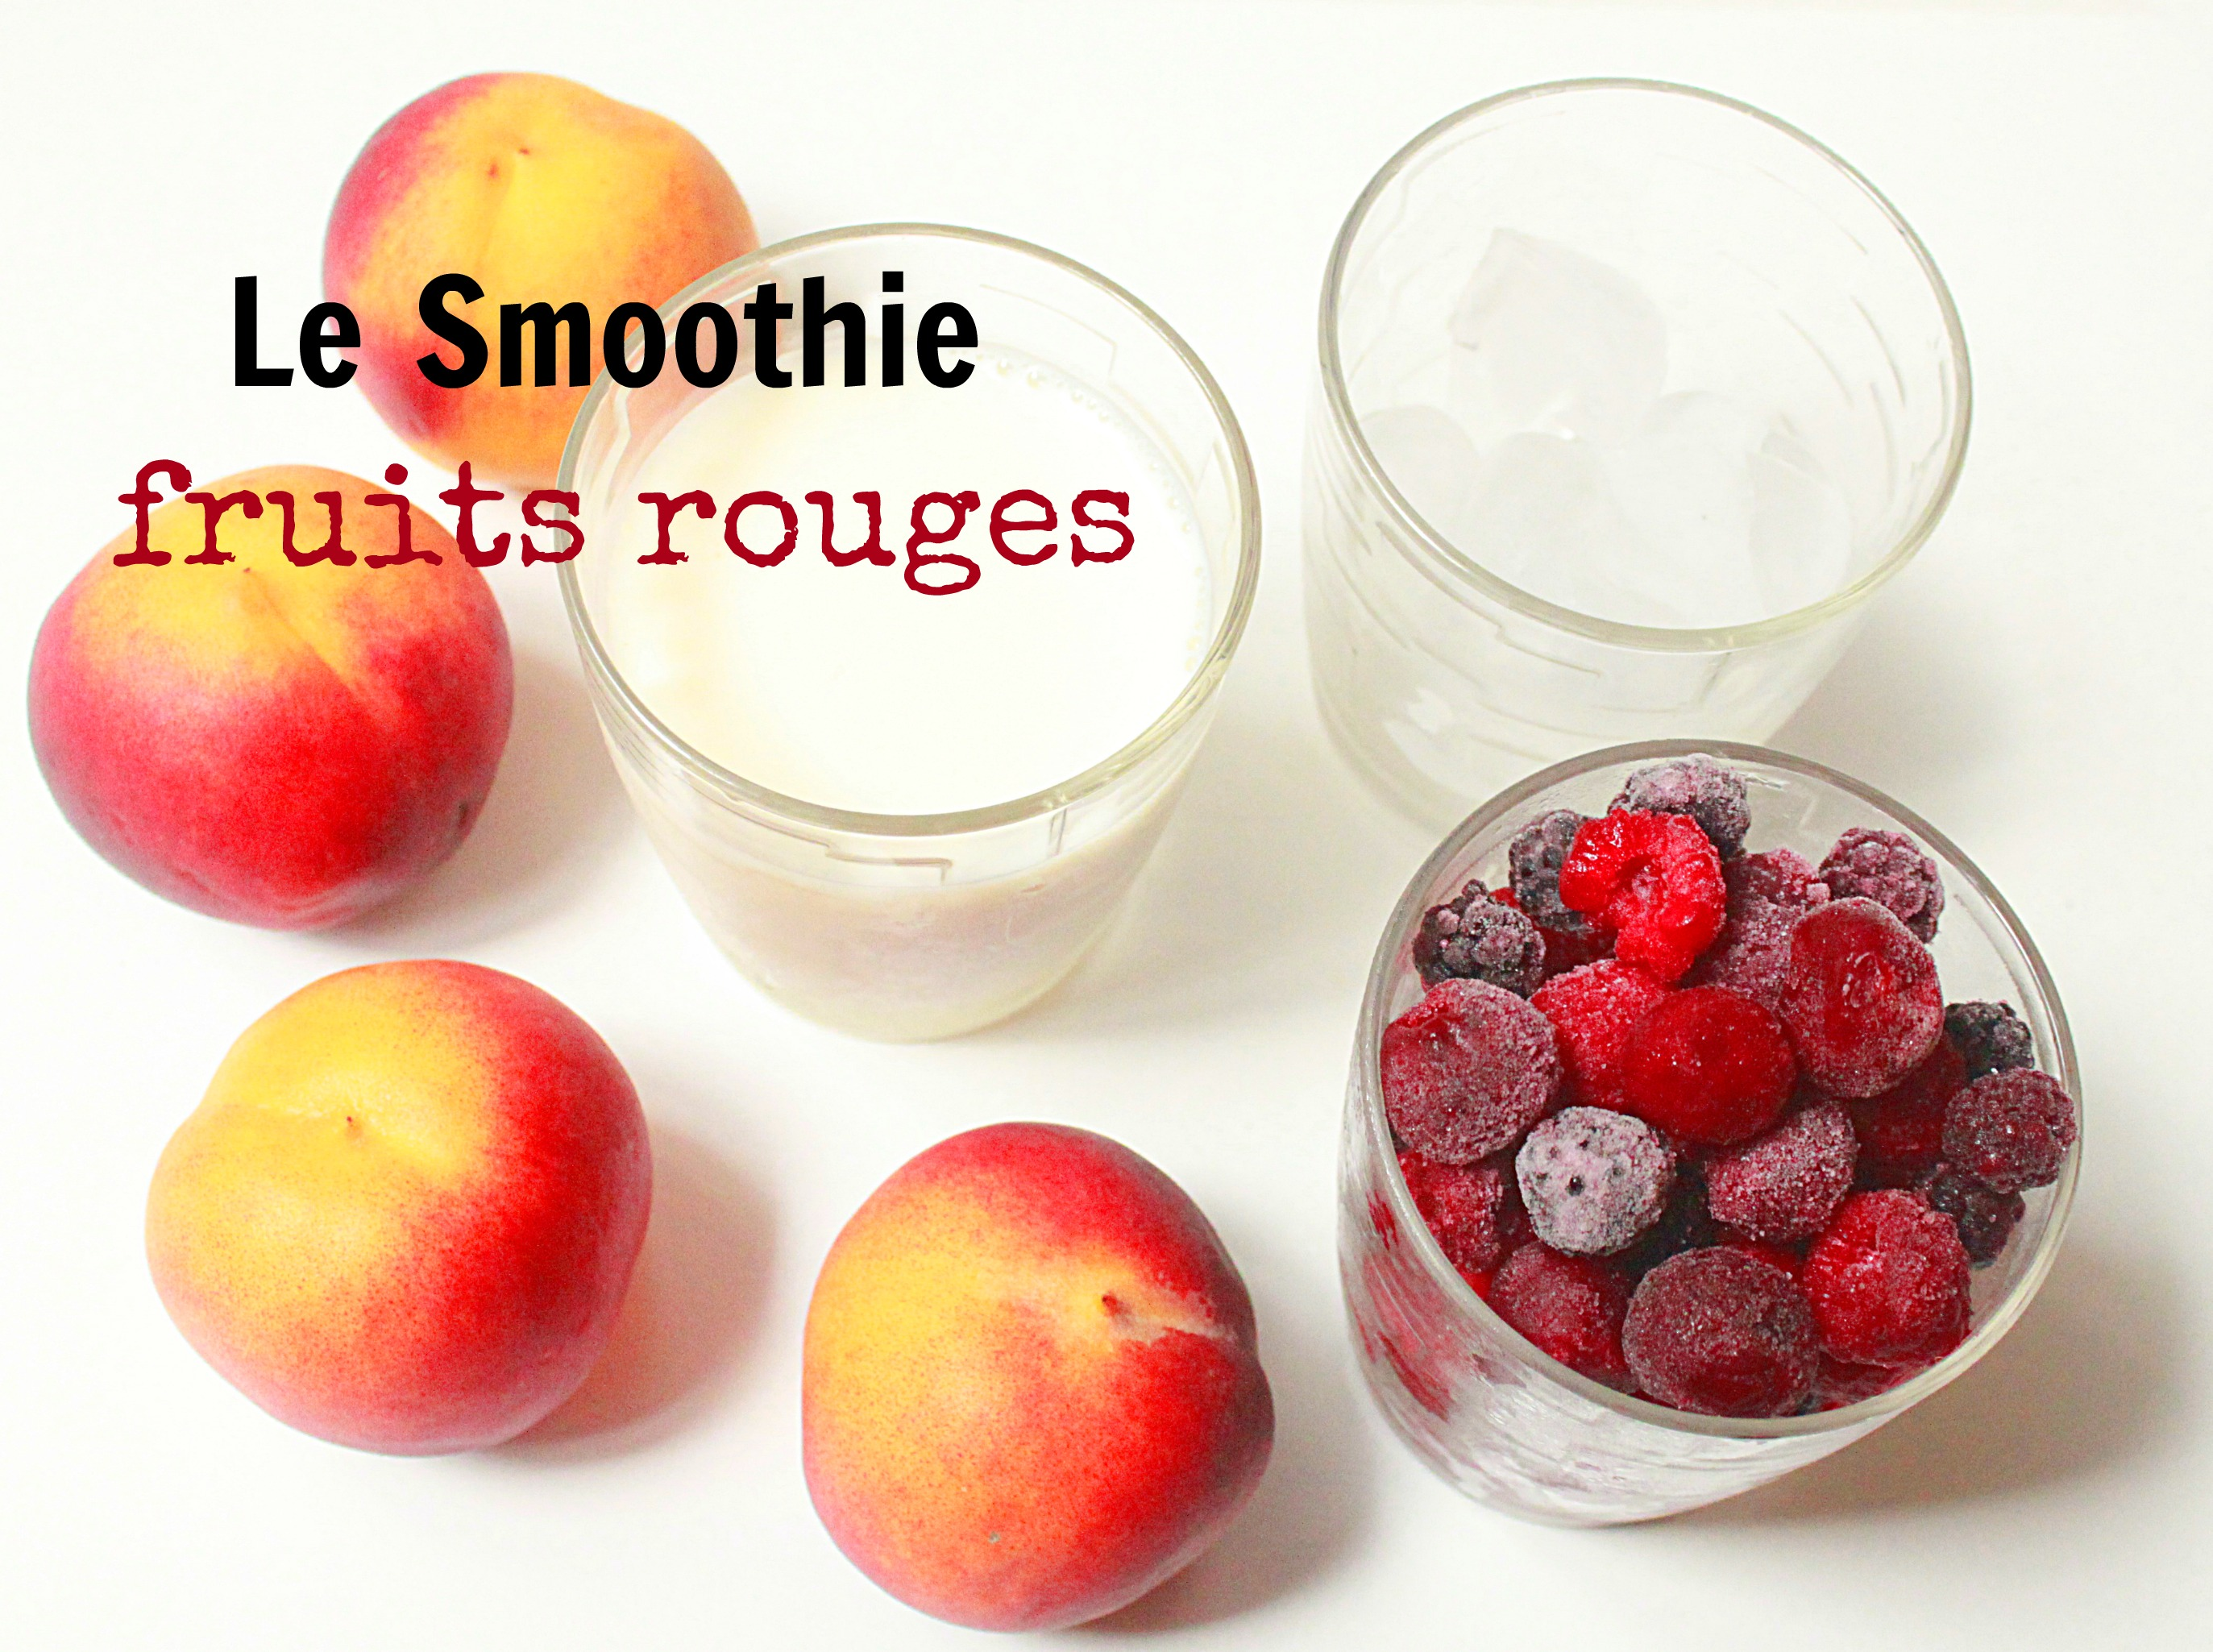 smoothie, fruits rouges, pêches, fruits, bienfaits